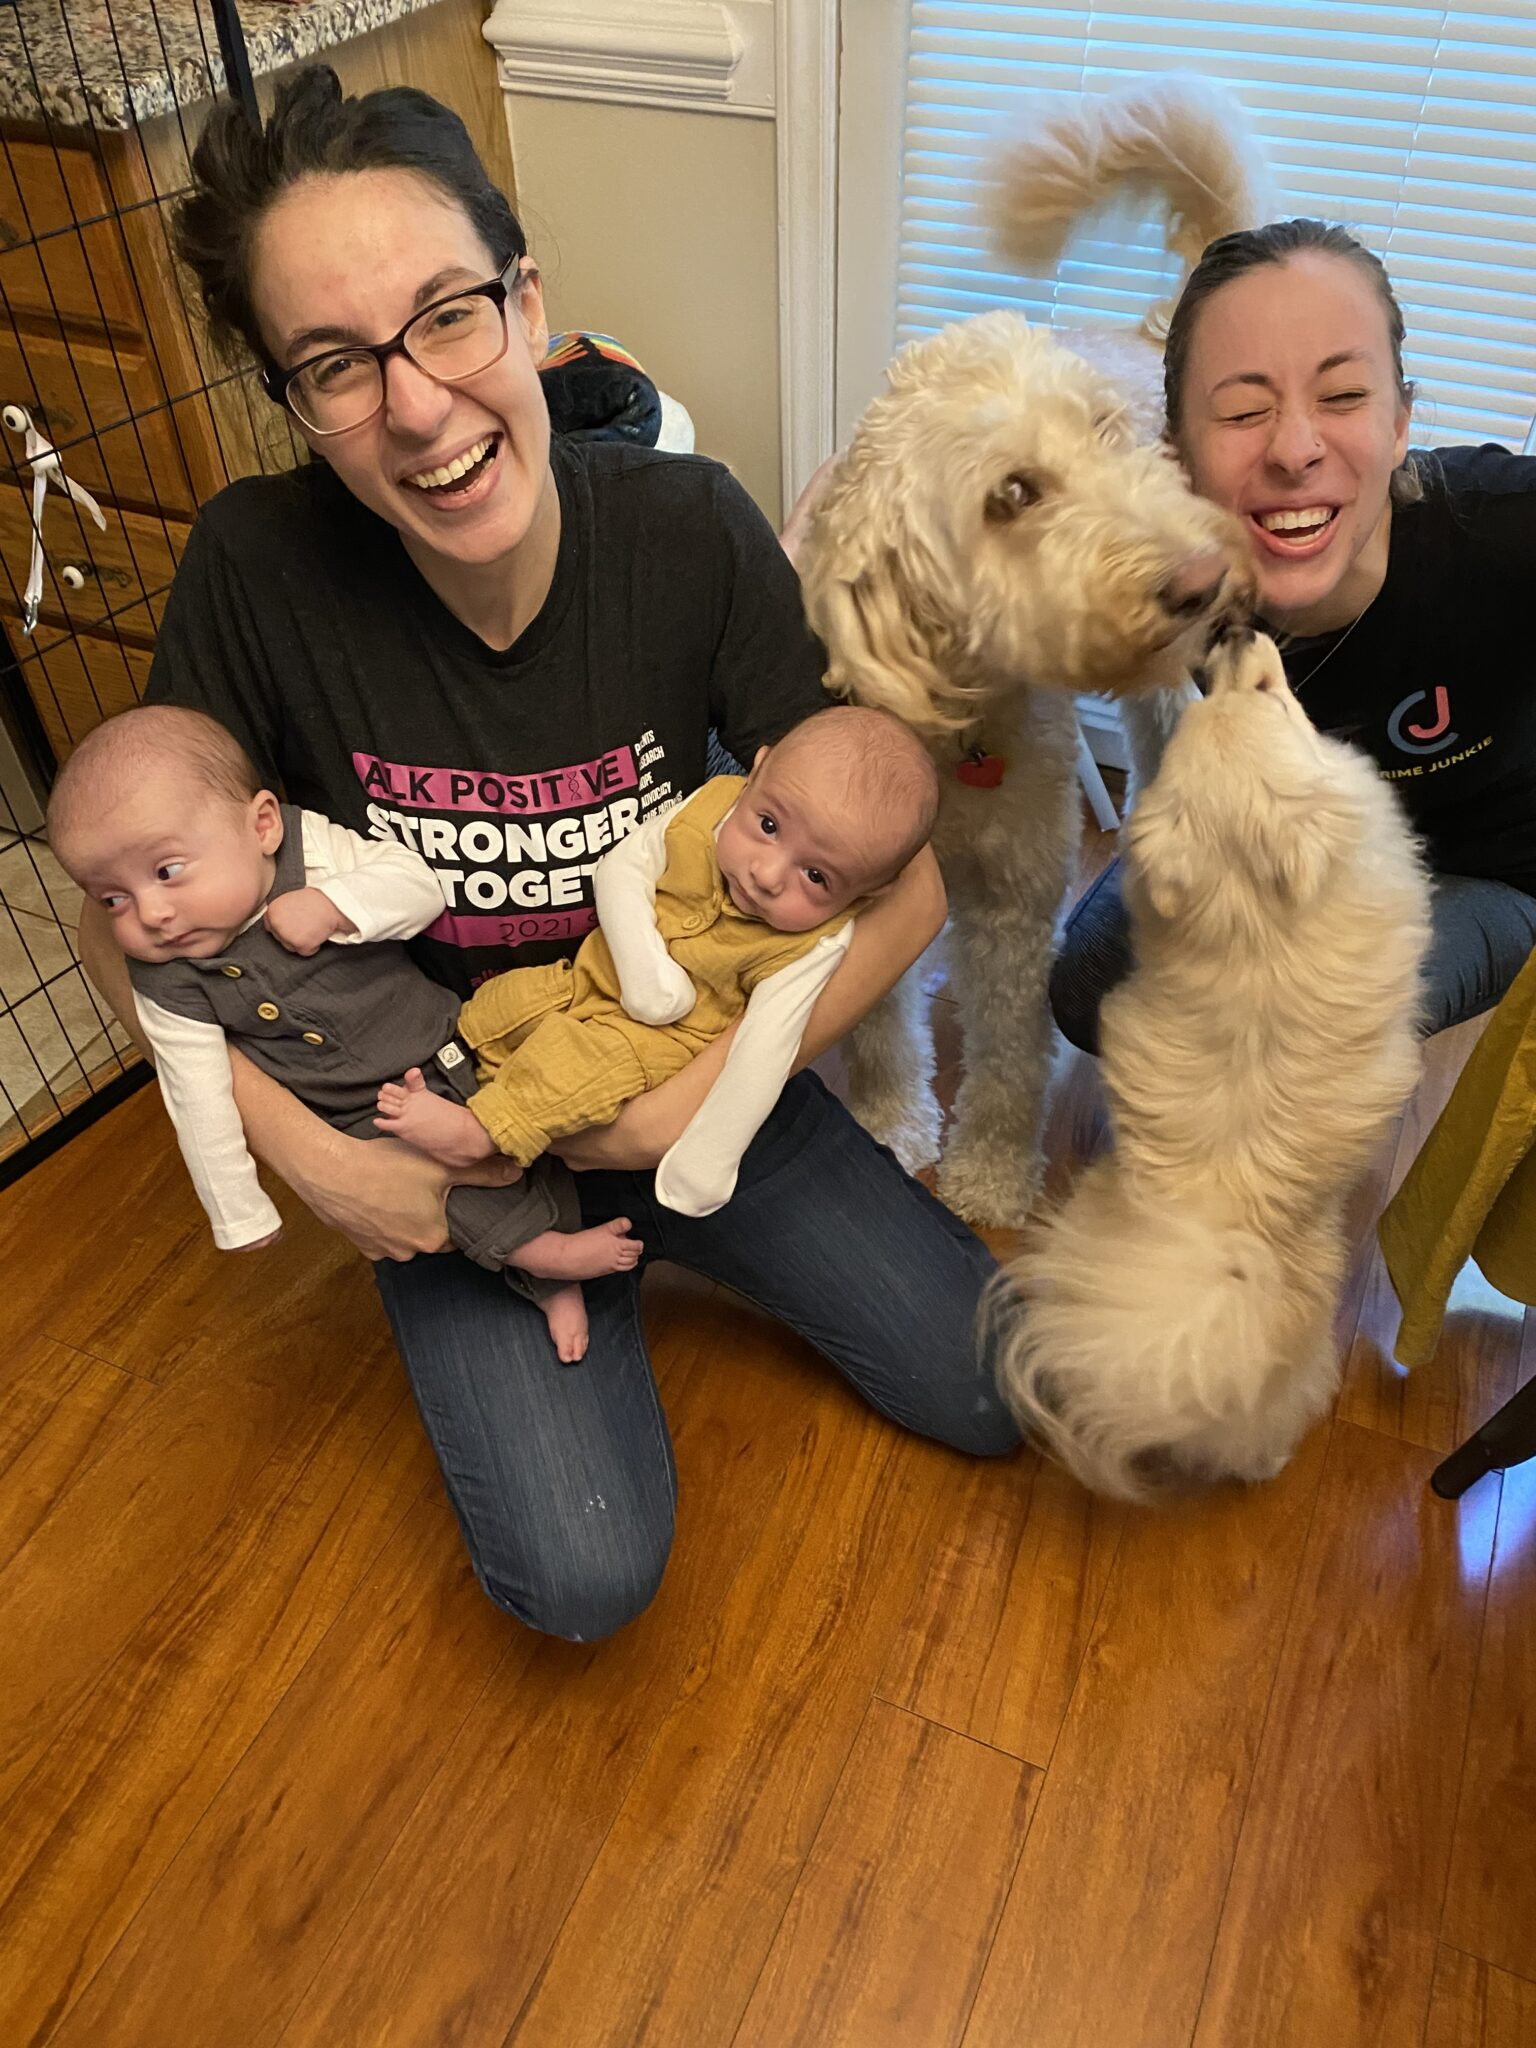 Venelina, Lindsay, and the babies crouch down with their two dogs